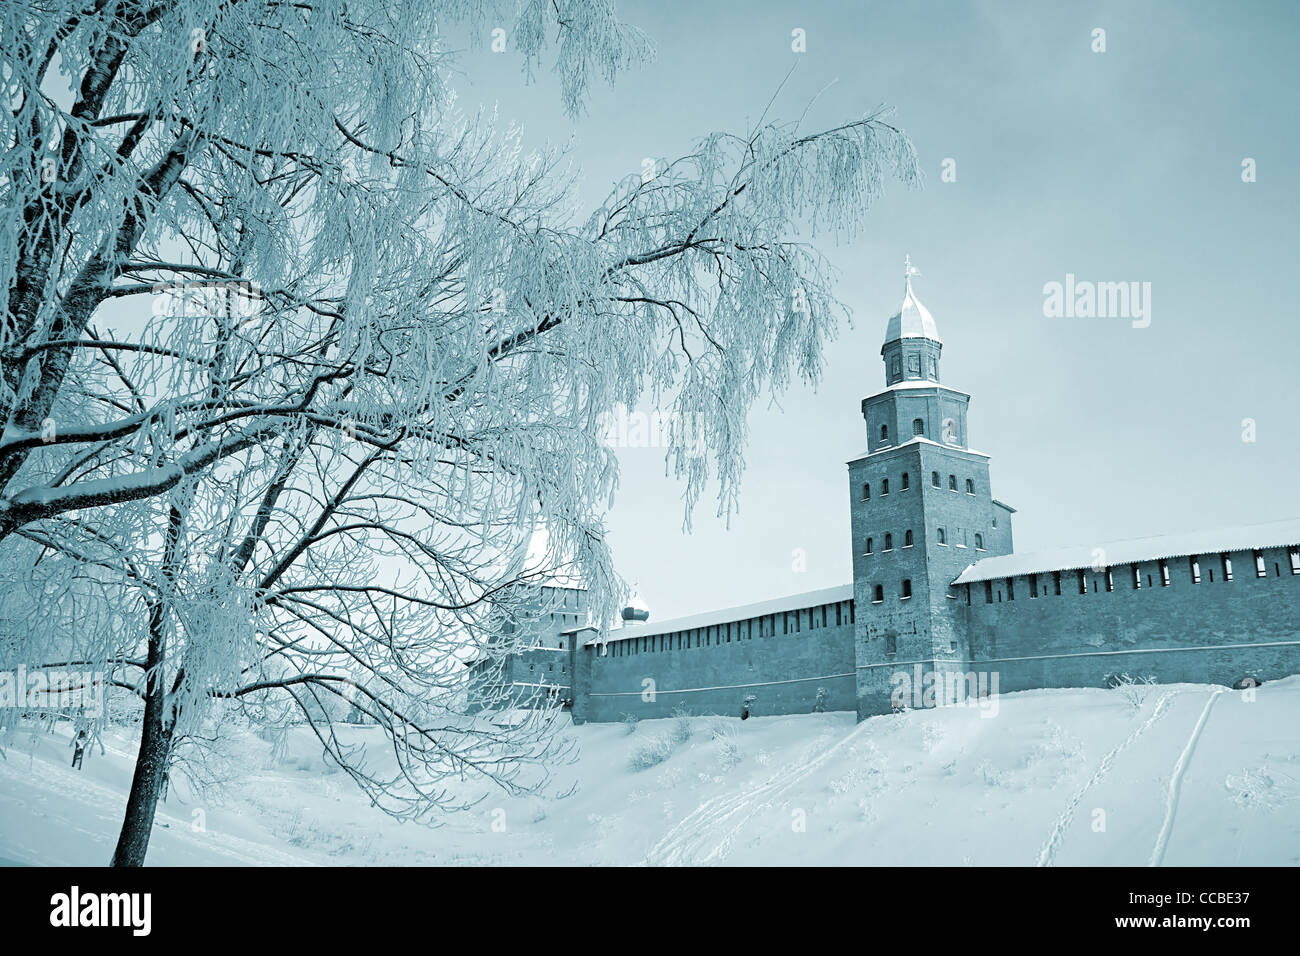 old-time fortress - Stock Image